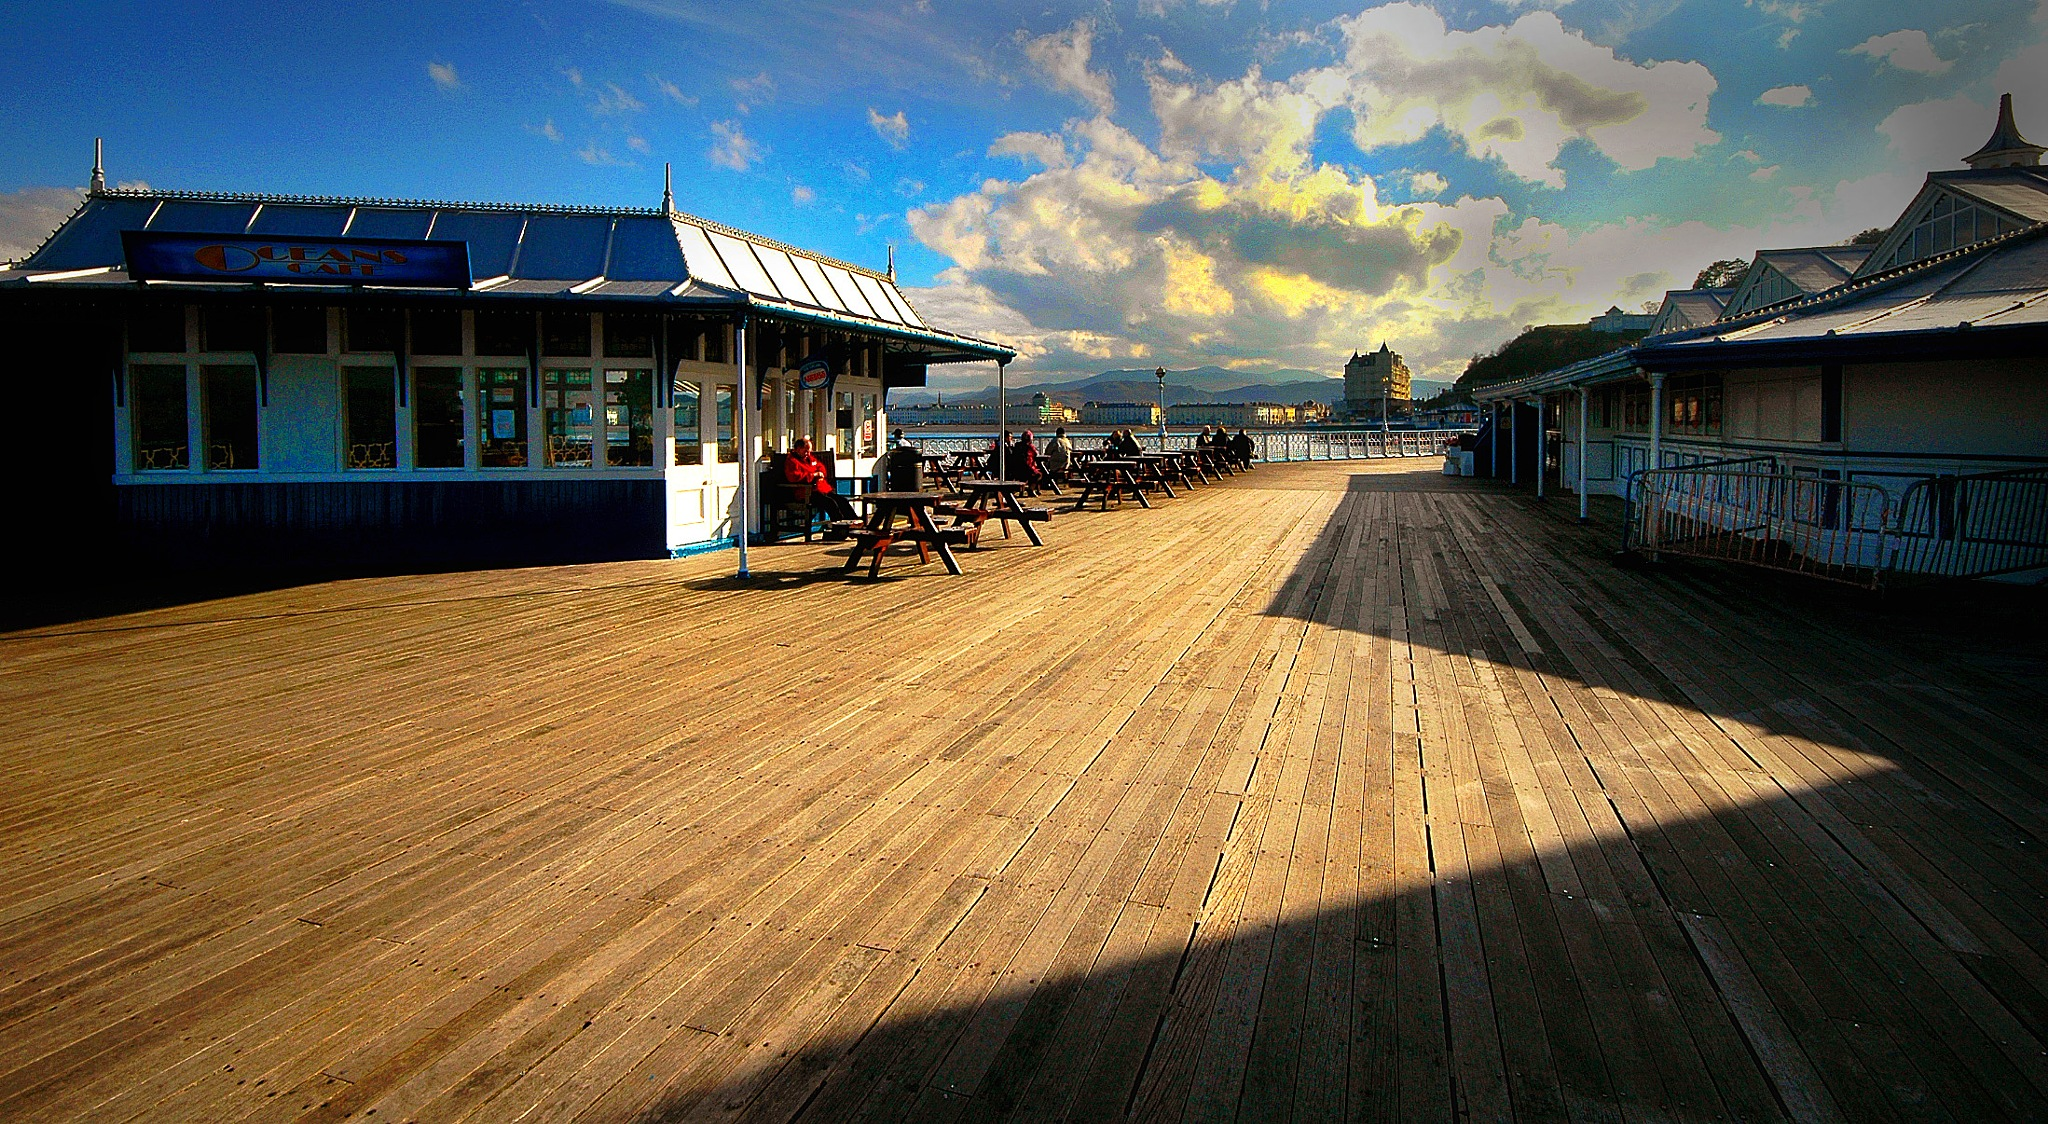 Late Afternoon on the Pier by John Roberts